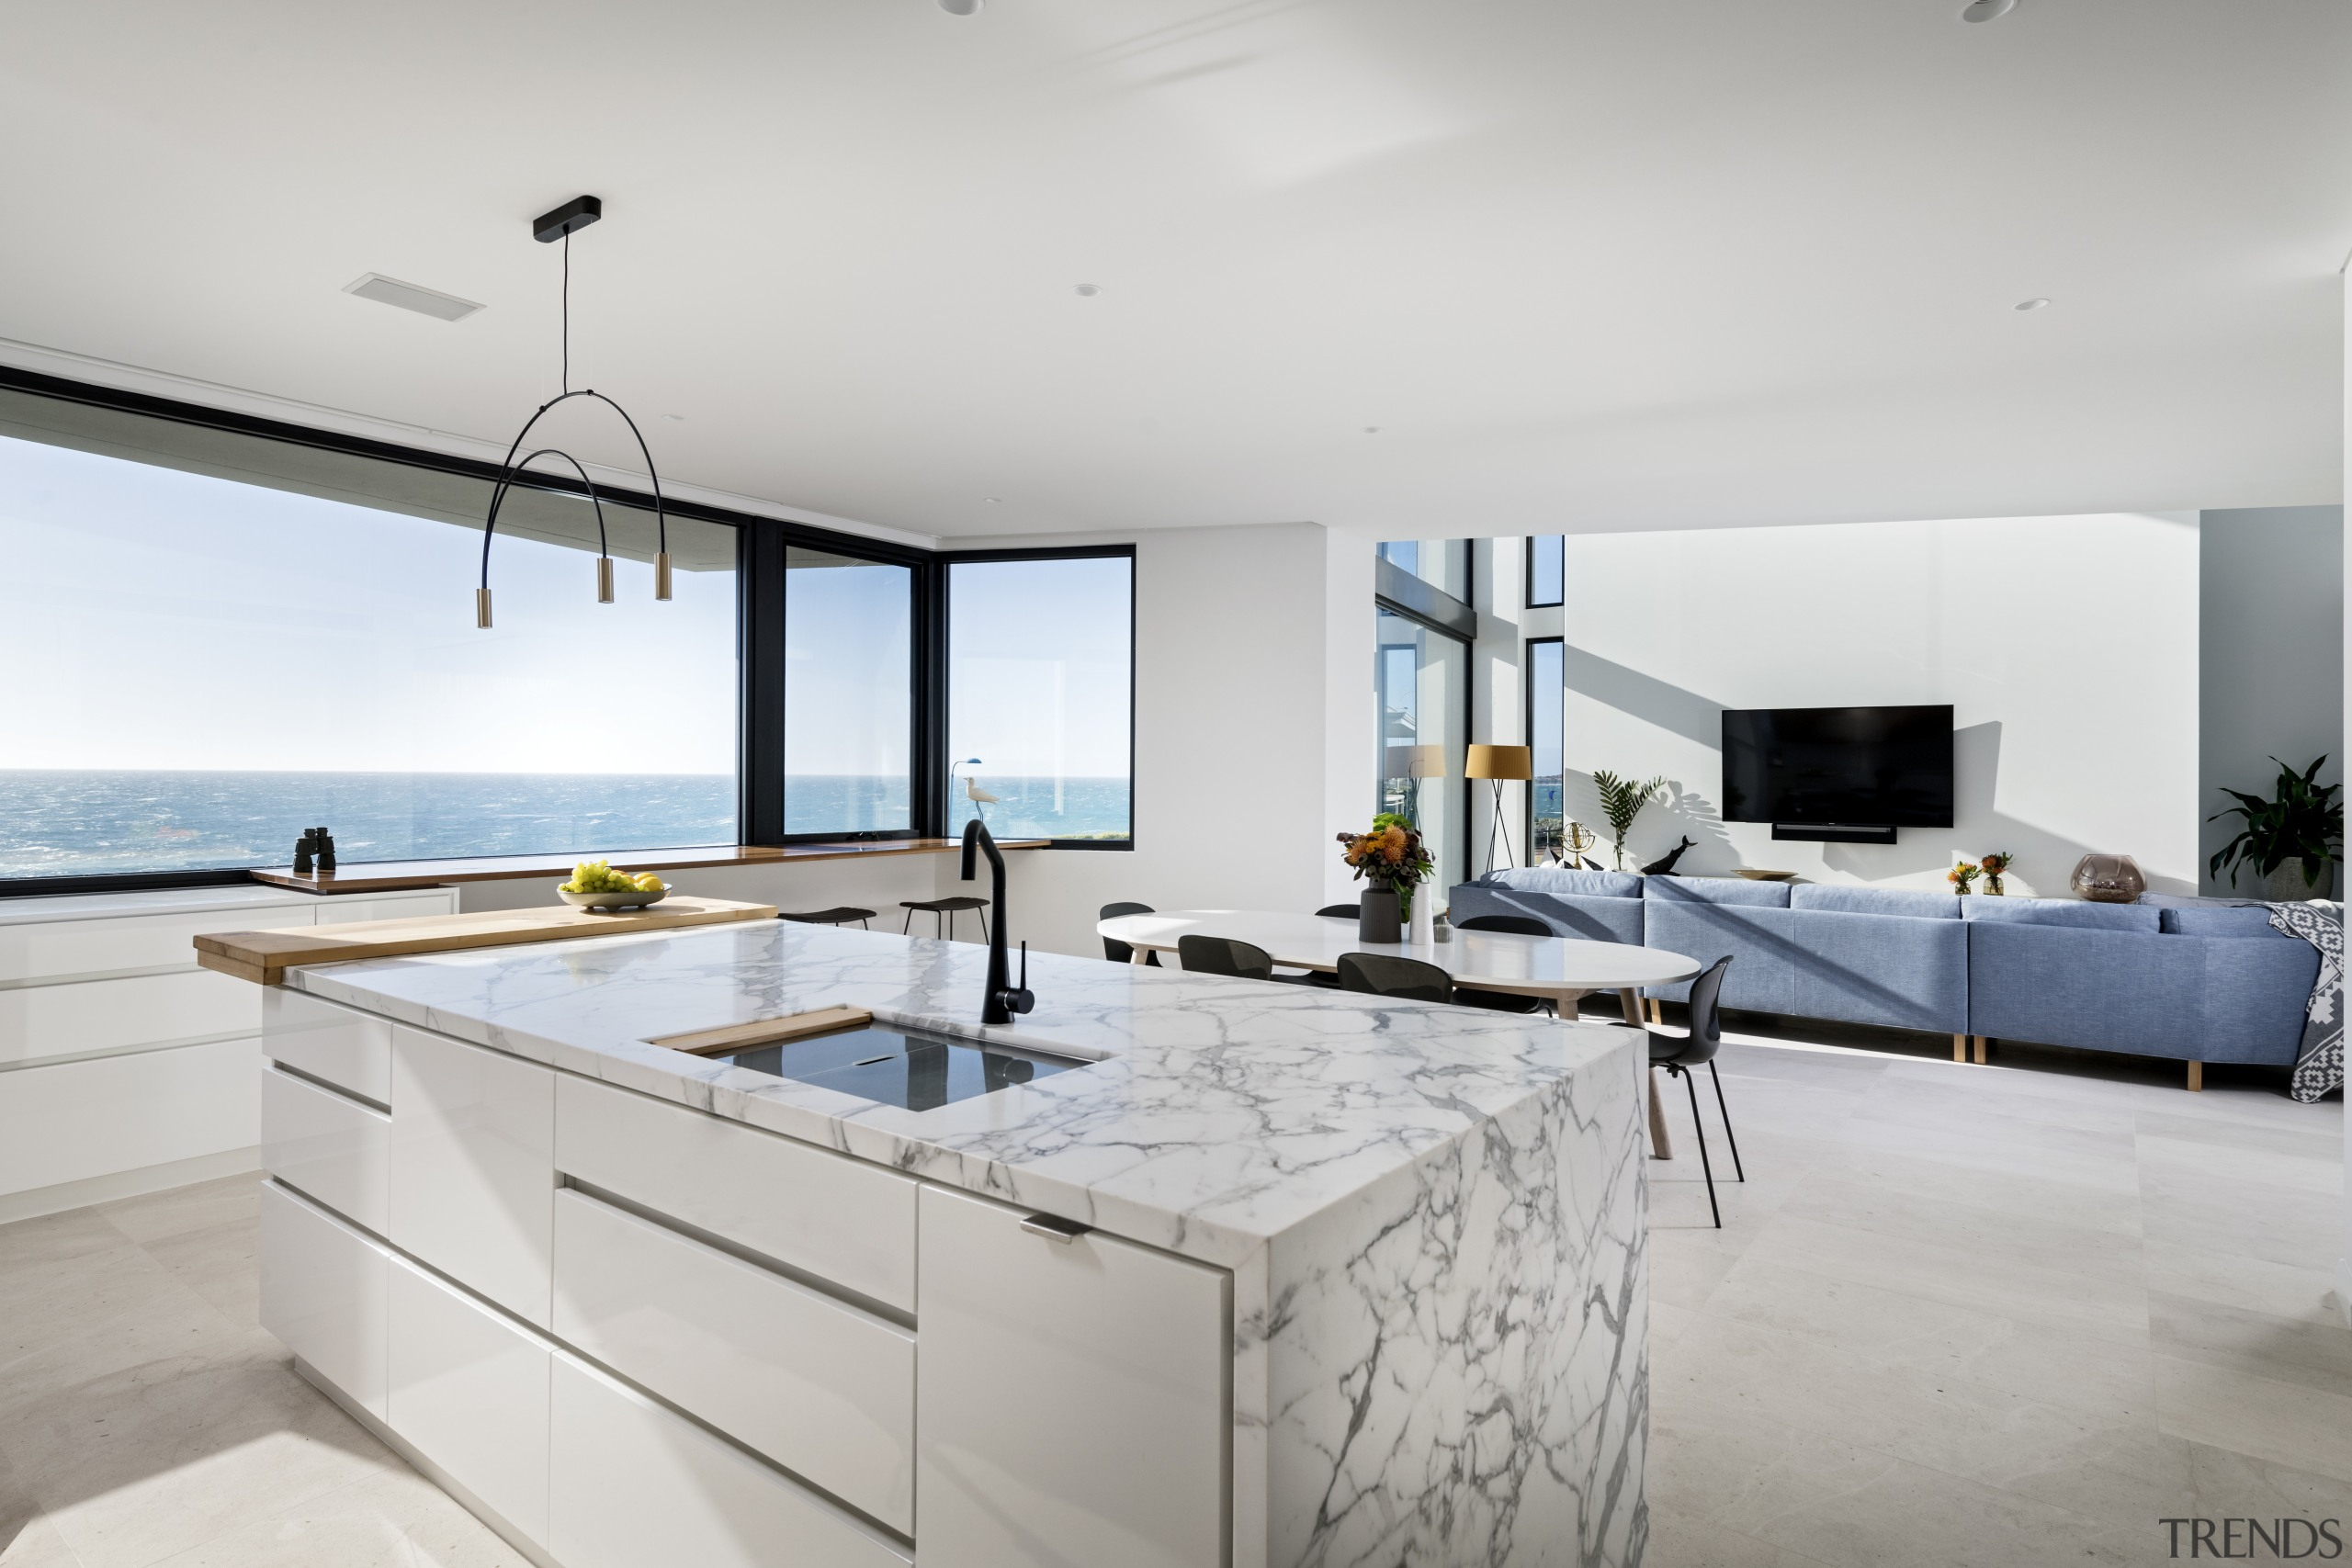 An island surrounded by sea – well it apartment, architecture, cabinetry, countertop, design, furniture, interior design, kitchen, Steve Gilosca